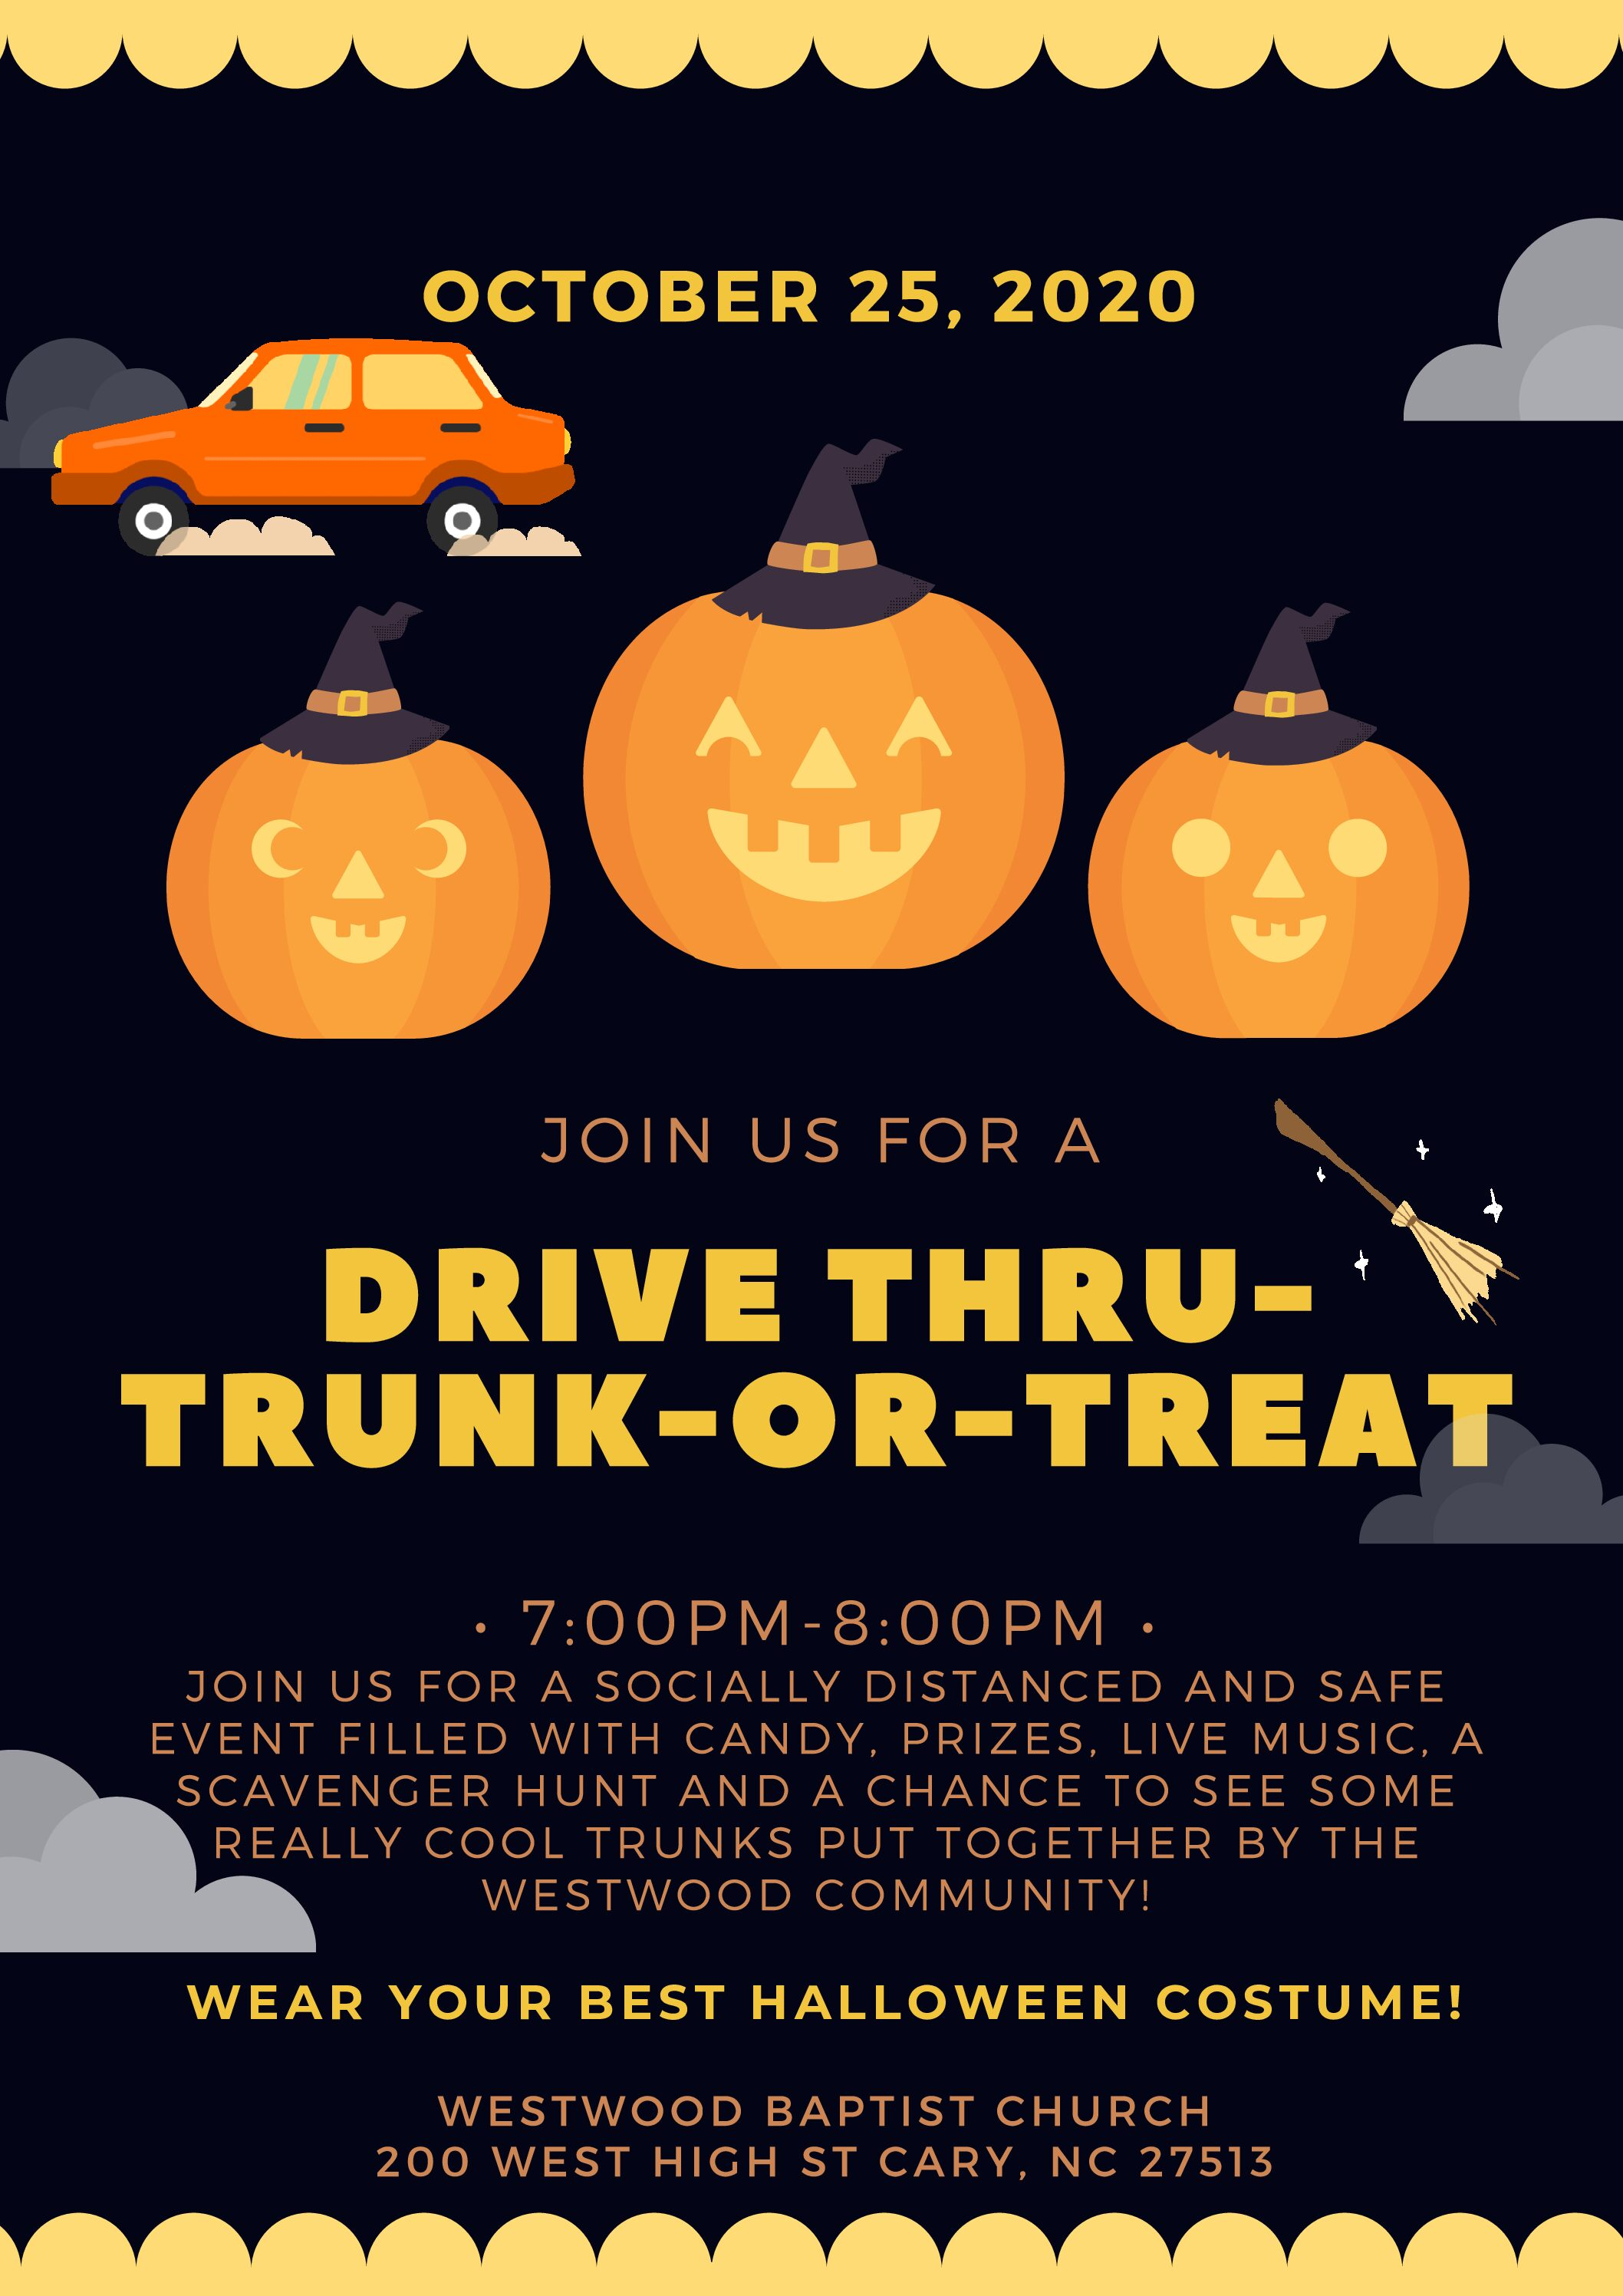 Drive Thru Trunk-or-Treat October 25th